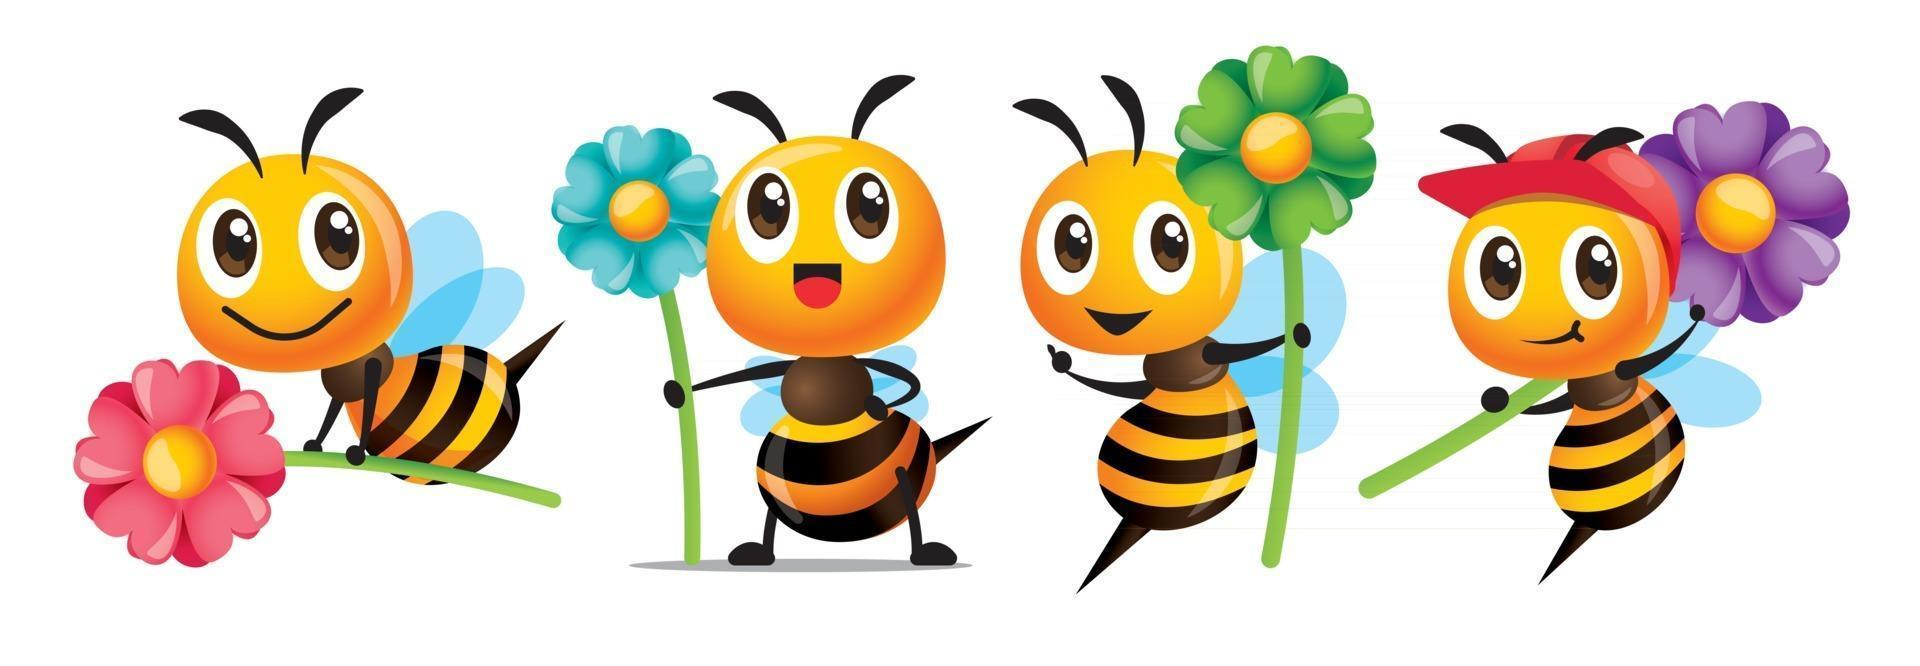 Cartoon cute bee with smile series holding big colourful flowers mascot set vector